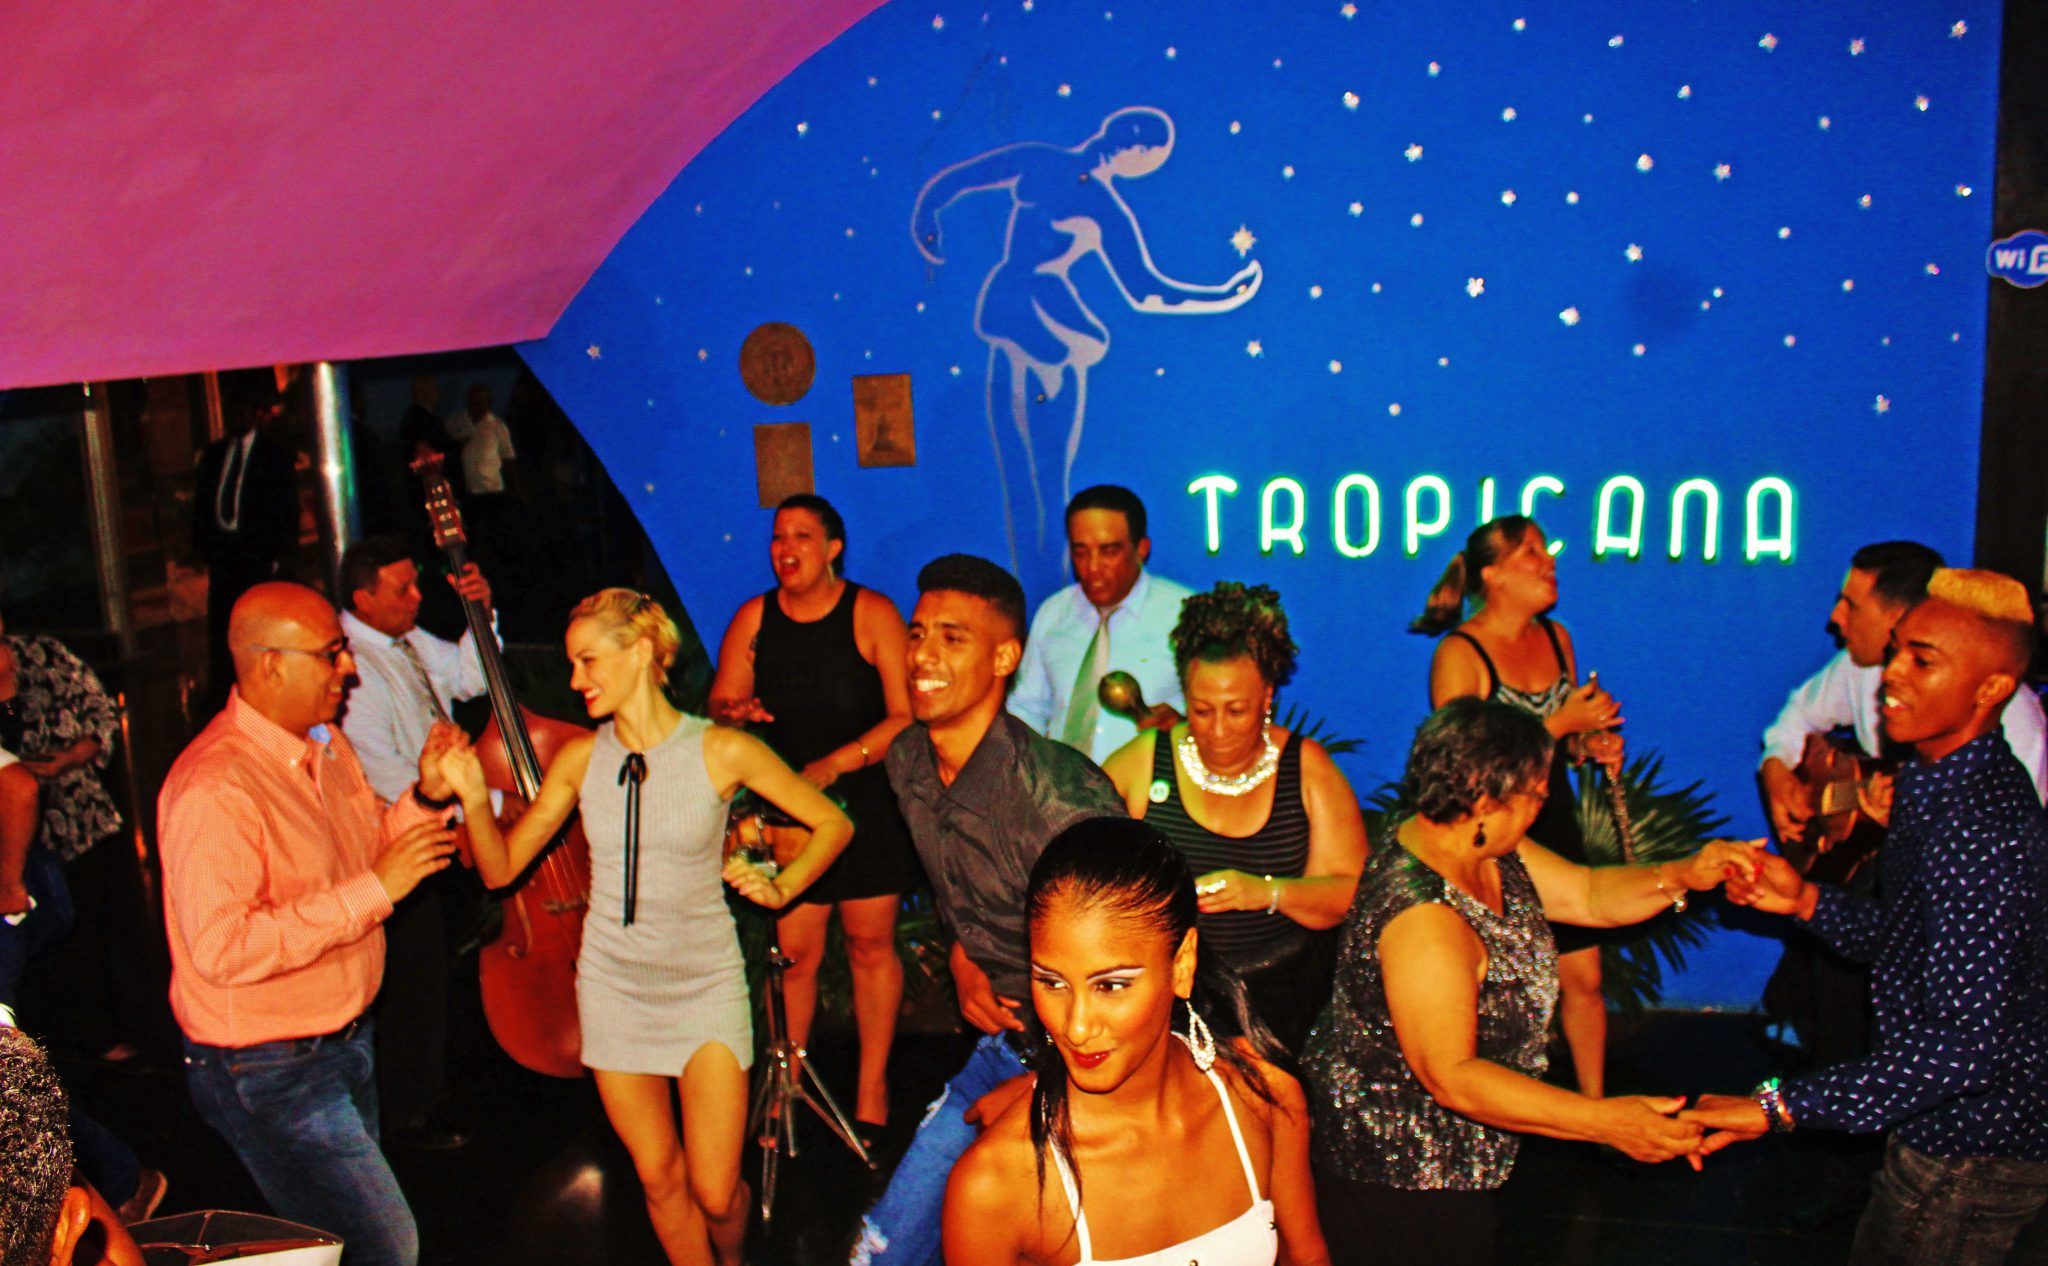 The Tropicana Cabaret experience starts in the lobby entrance as members of the troupe greet visitors with an invitation to salsa as they wait in the Que to enter the cabaret.